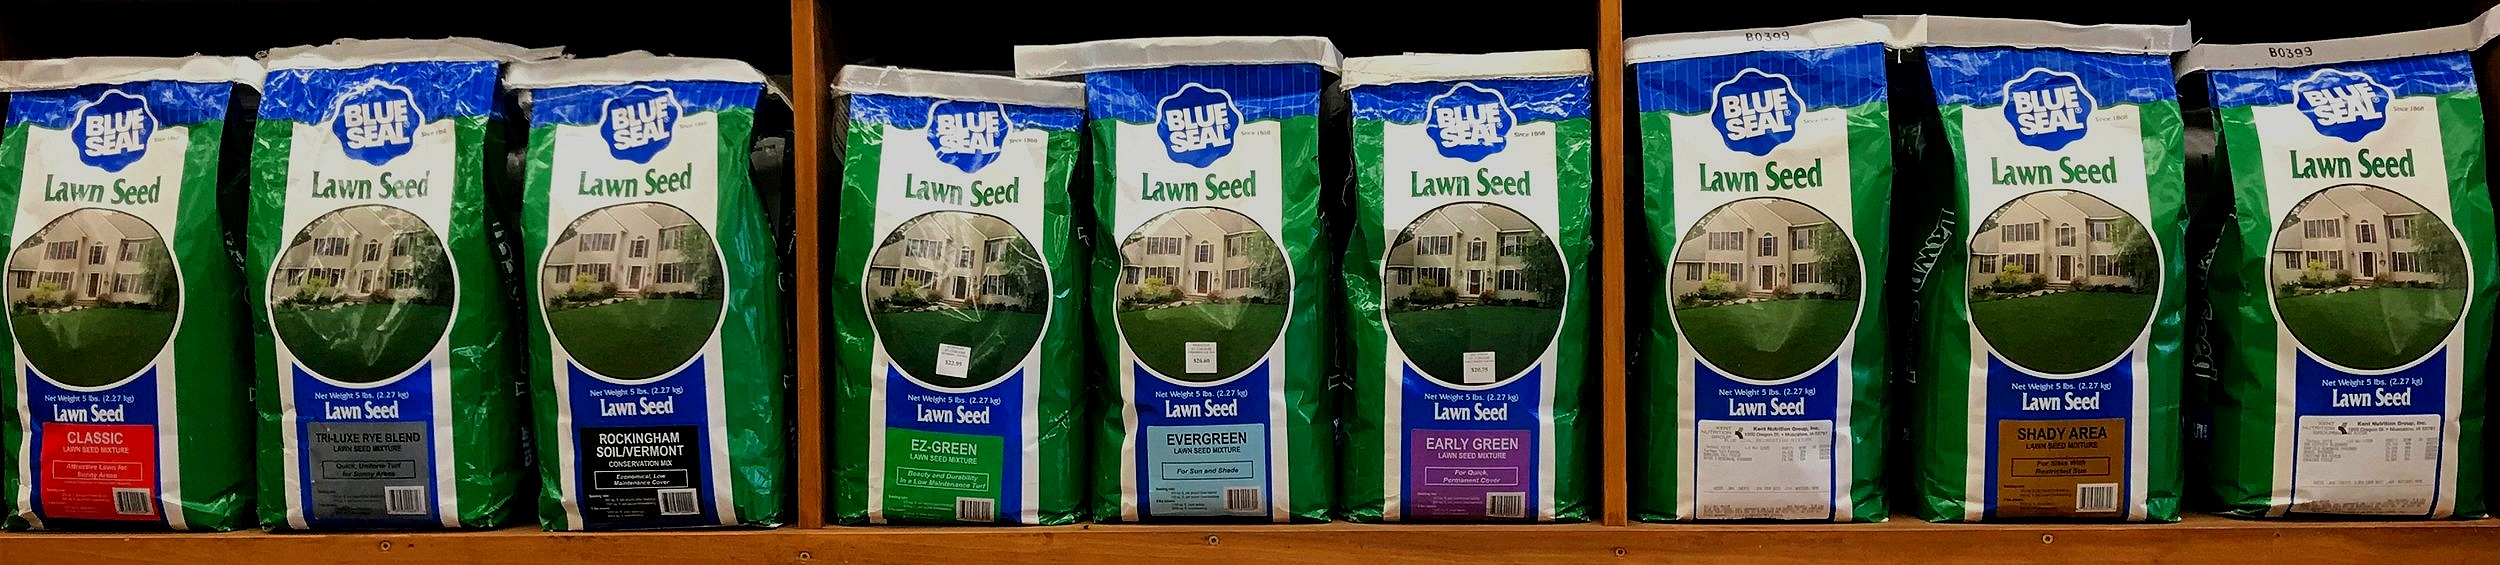 We have more than 9 varieties of grass seed that are specifically formulated for New England soils! Ask us which seed mix is best for your site conditions.